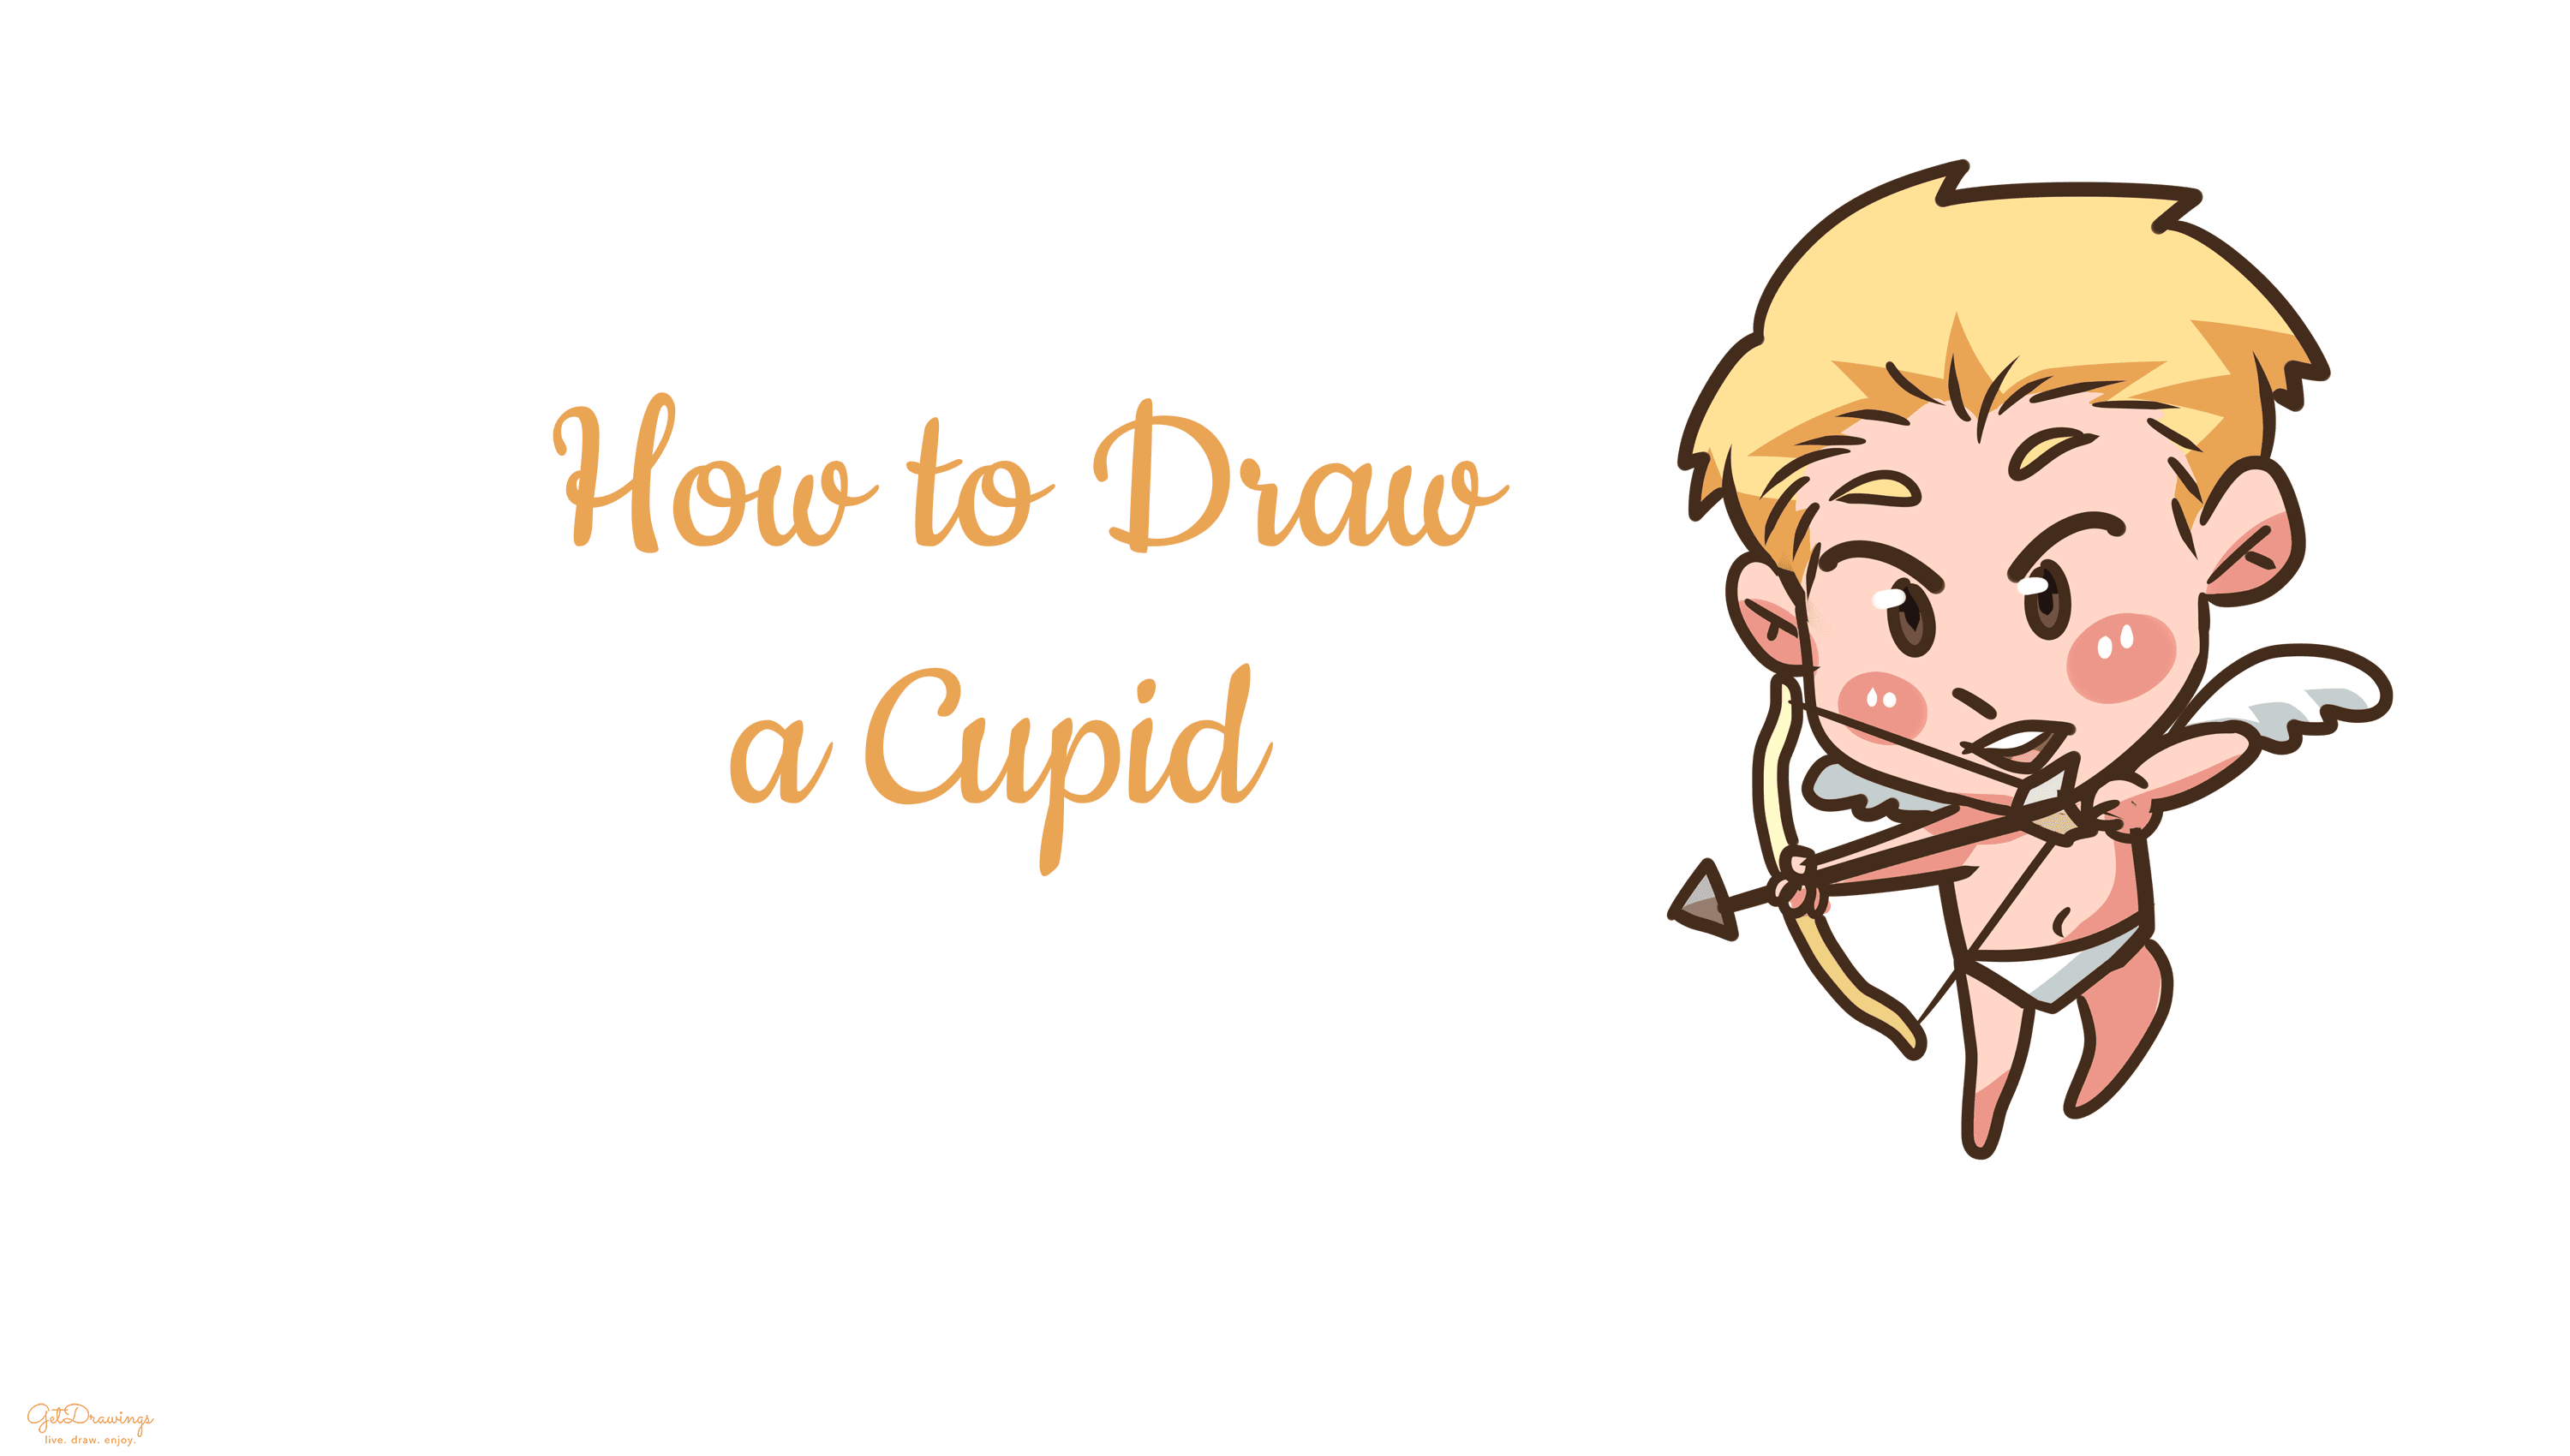 How to Draw a Cupid